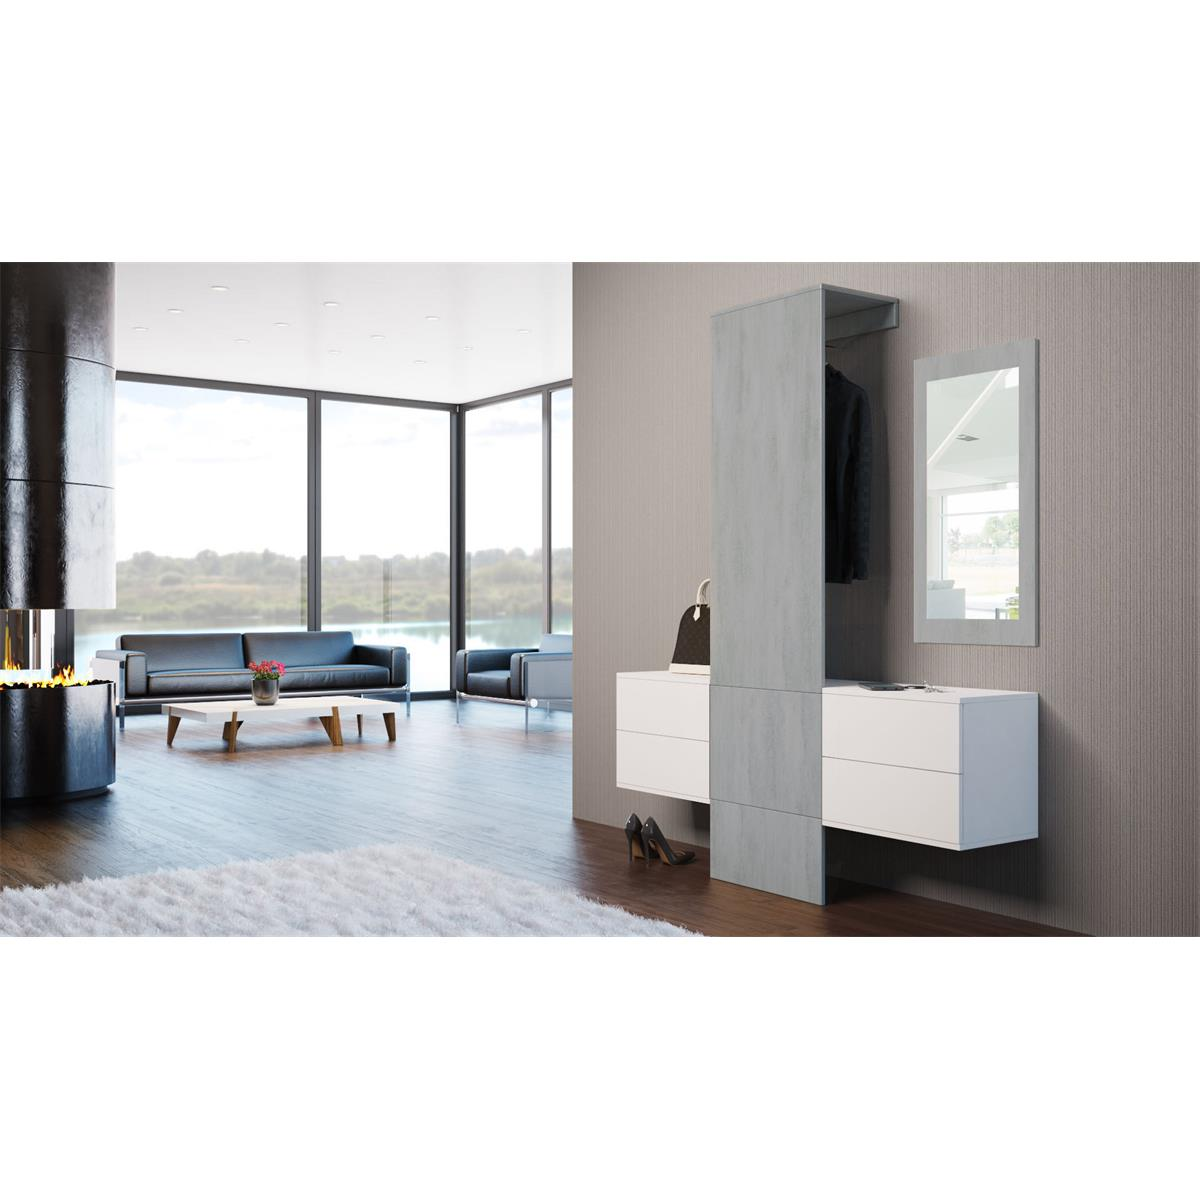 garderobe carlton set 3 beton oxid spiegel beton. Black Bedroom Furniture Sets. Home Design Ideas